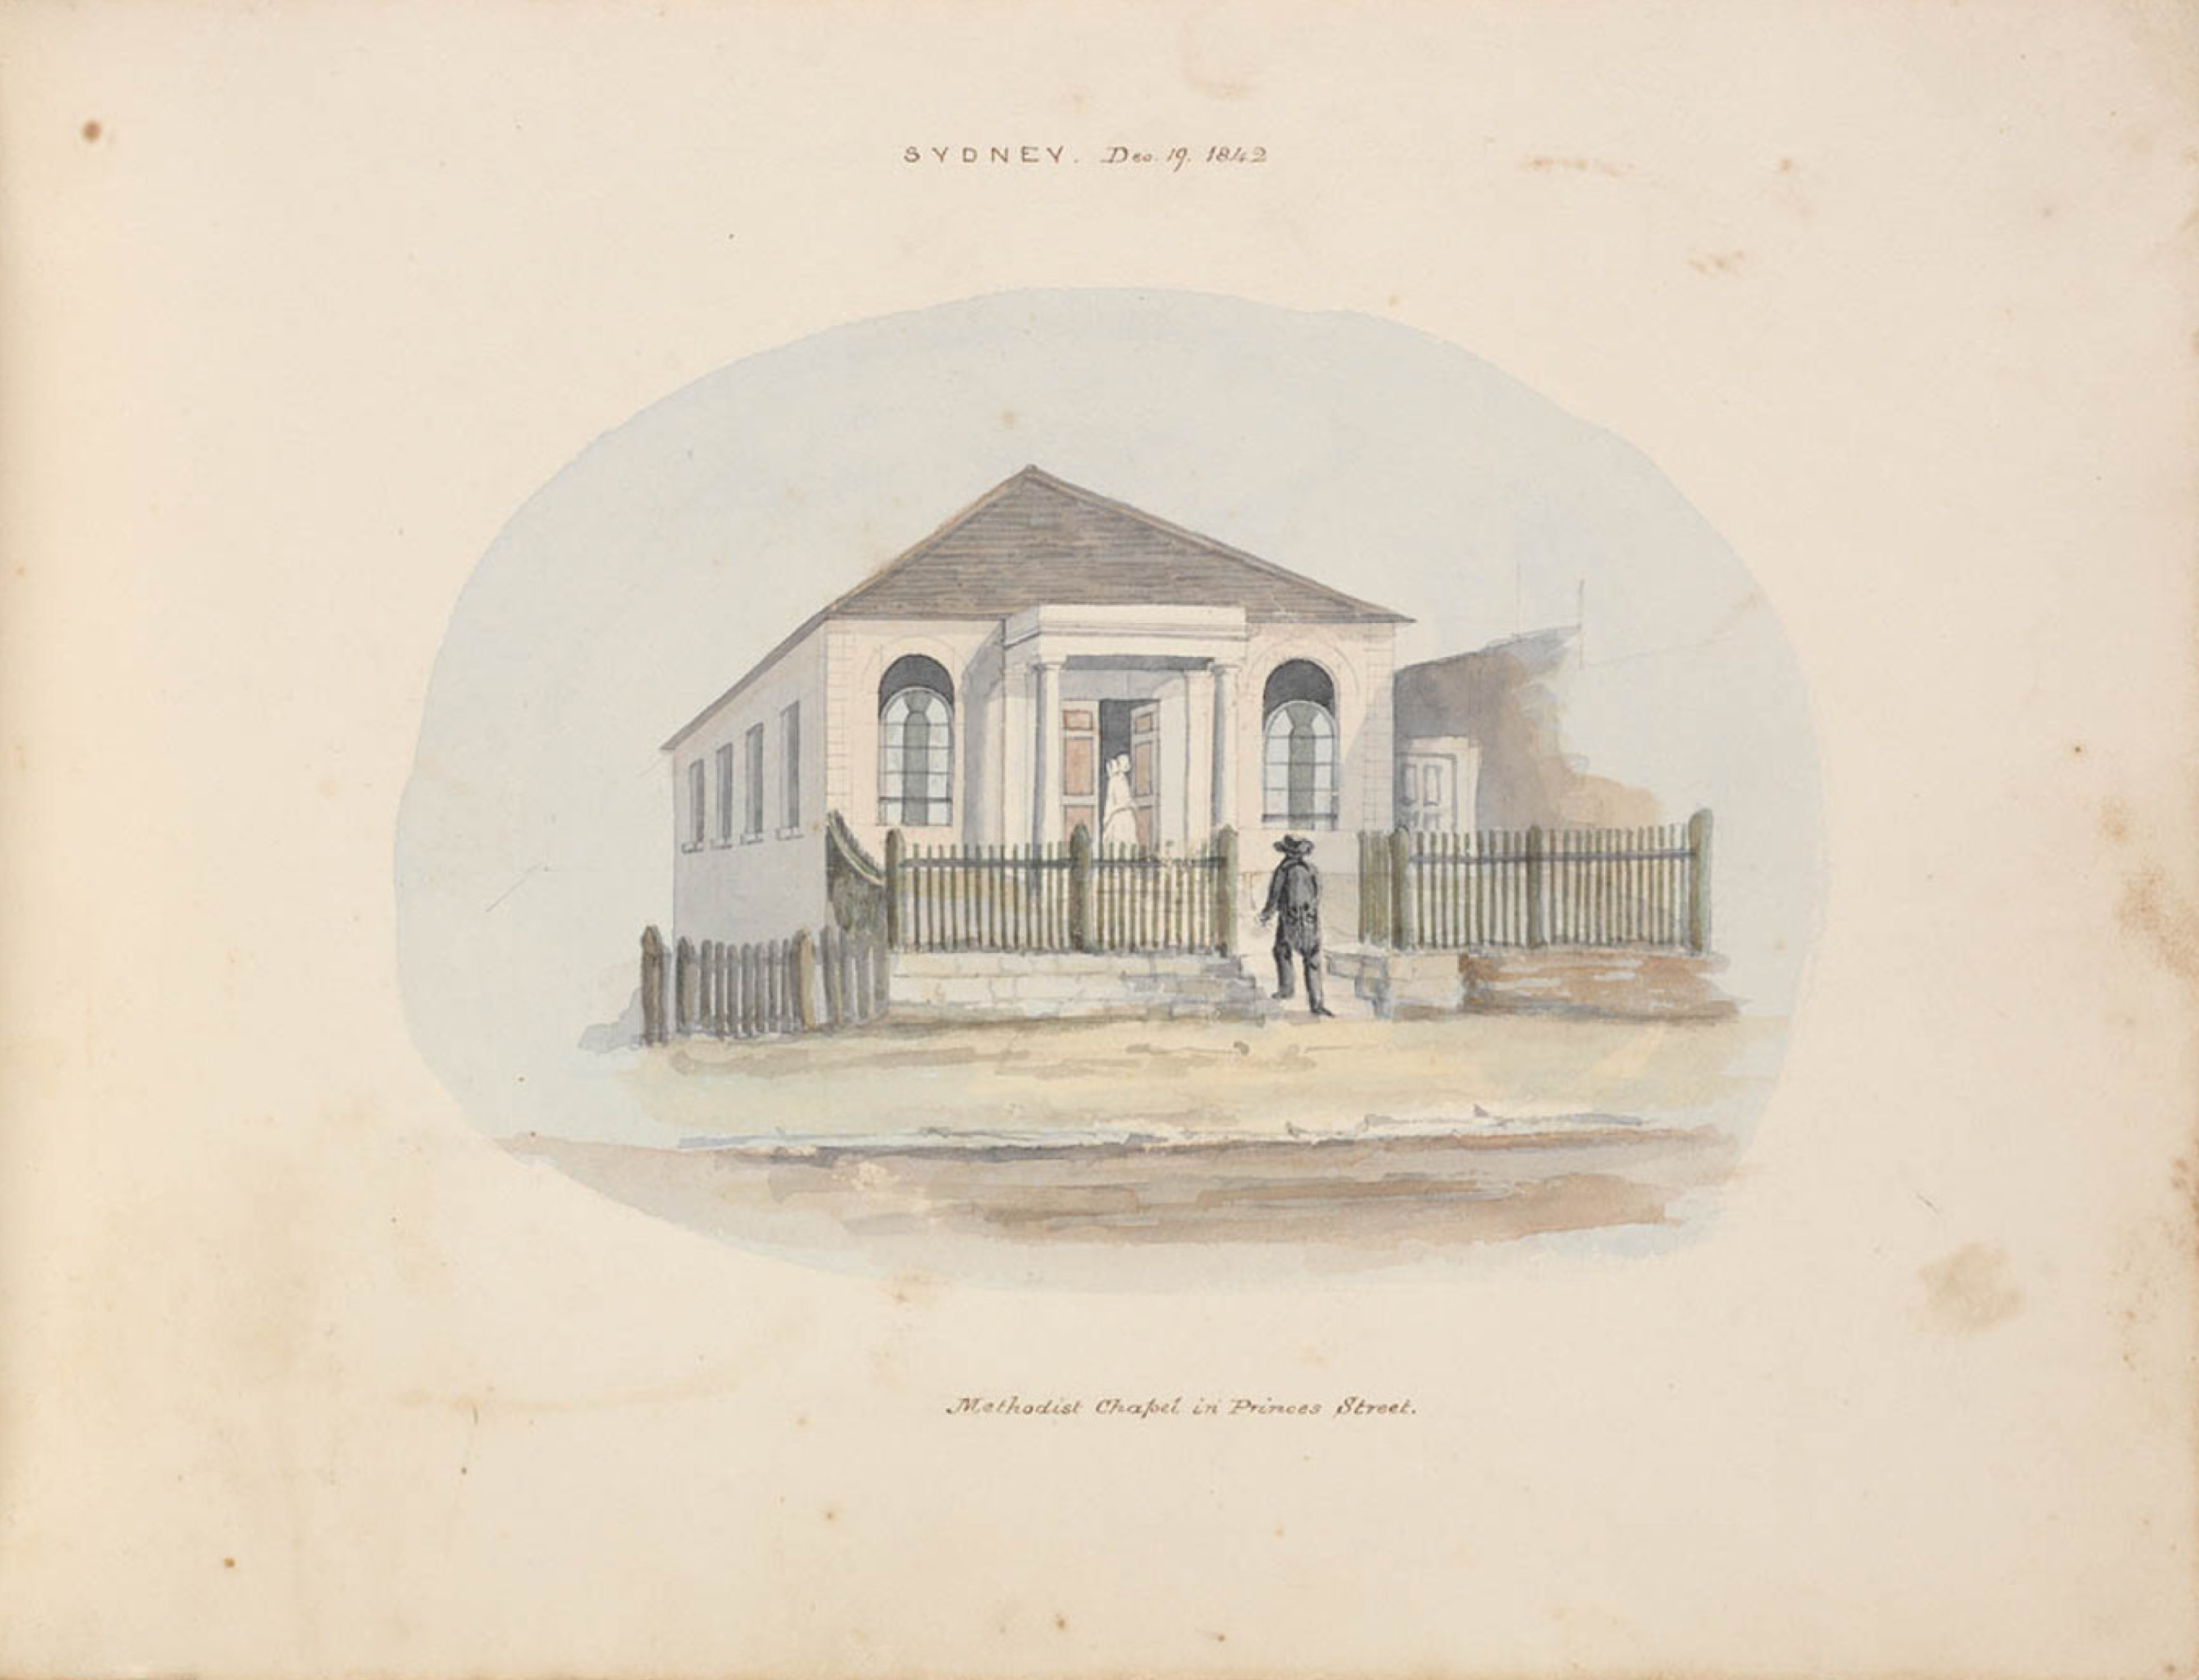 First Wesleyan Chapel, Princes Street Chapel, The Rocks, Methodist, St. John's Cemetery Project, Old Parramattans, Reverend Samuel Leigh, Catherine Leigh, E. T. Blacket, Sketch